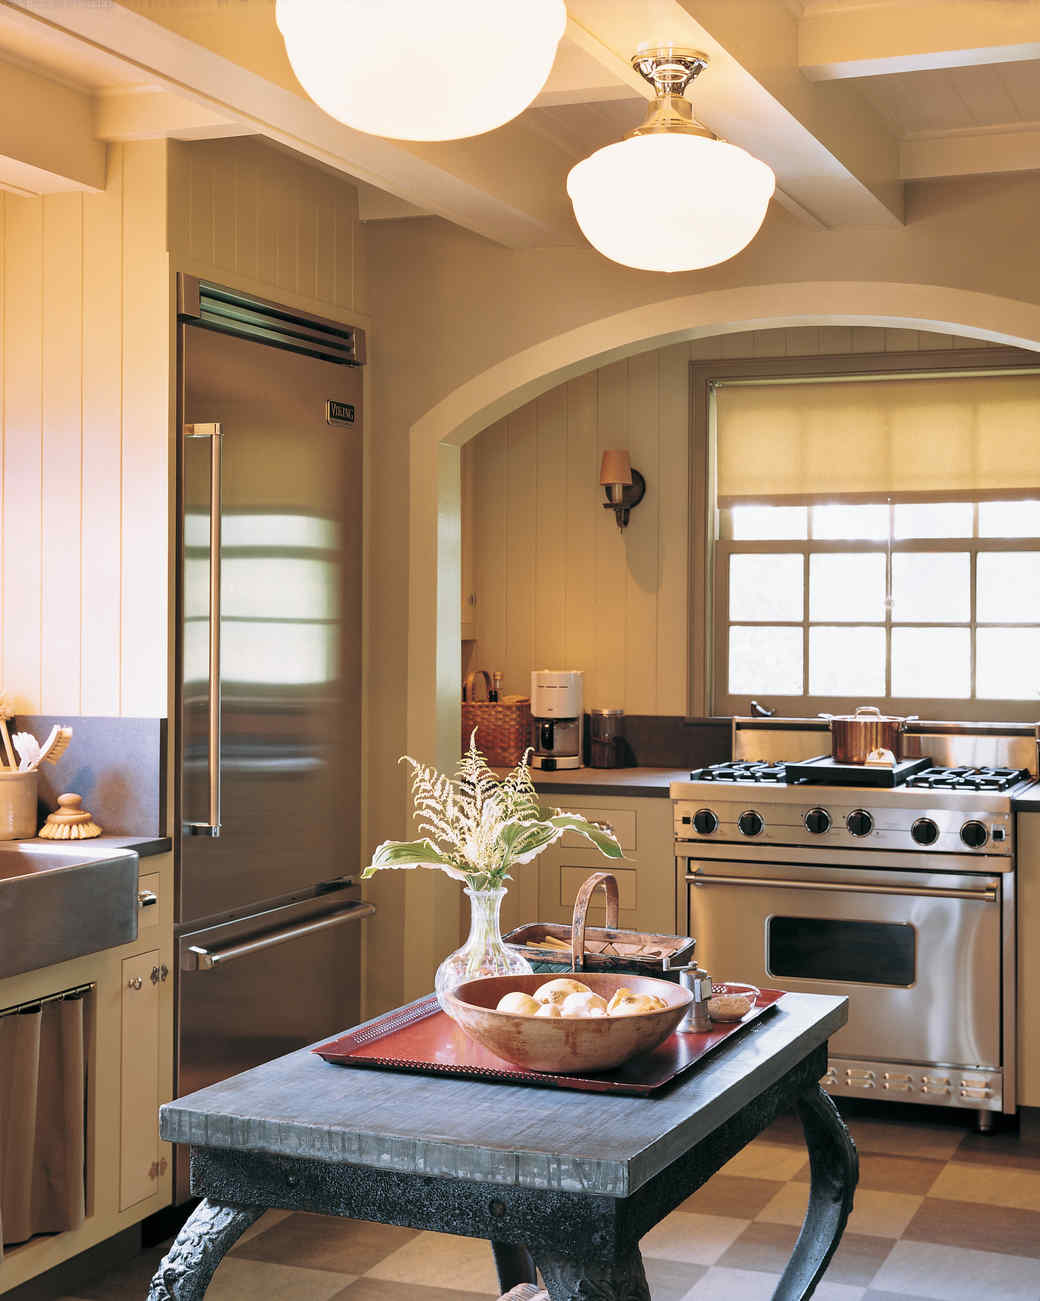 Attirant A Major Kitchen Design Makeover With An Updated Sense Of Tradition